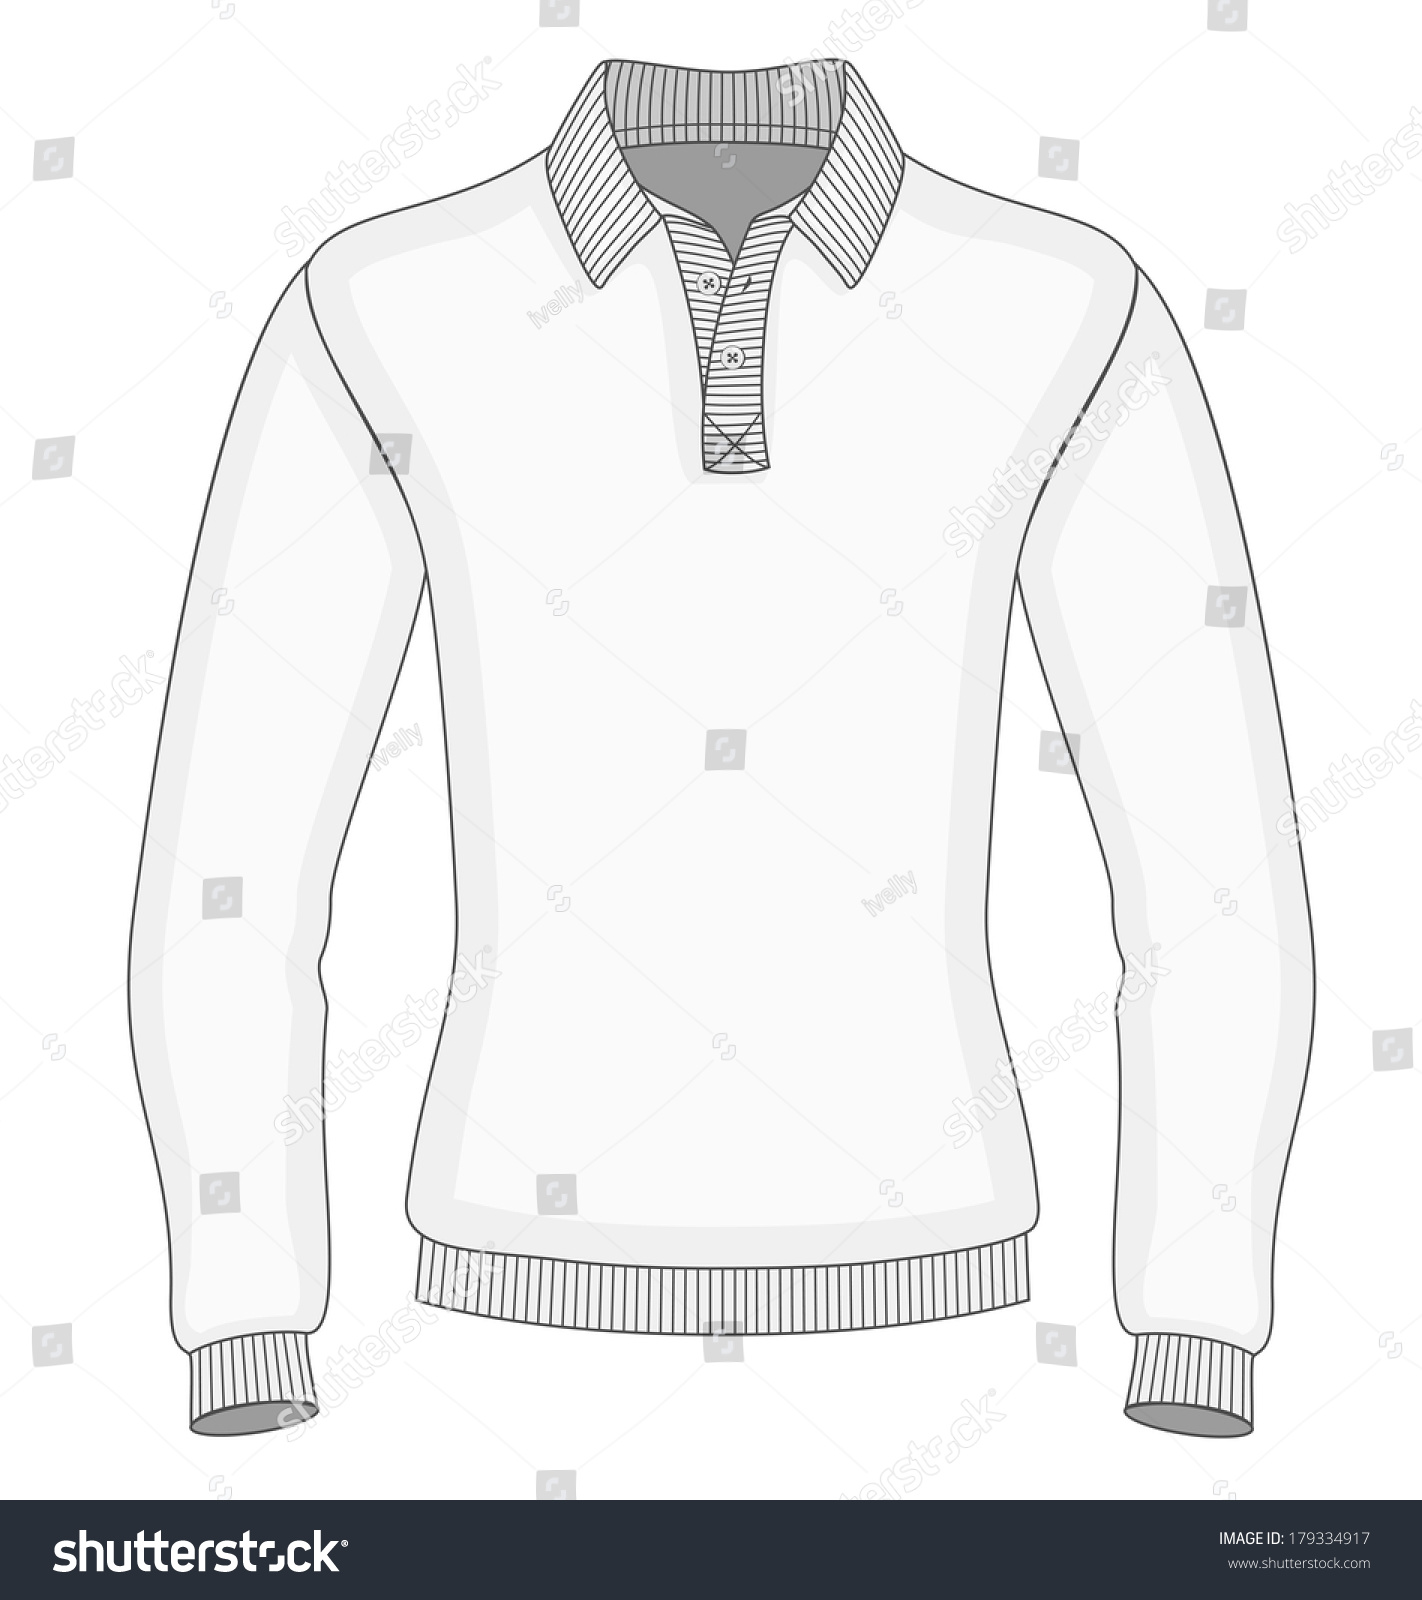 mens long sleeve polo shirt design stock vector 179334917 shutterstock. Black Bedroom Furniture Sets. Home Design Ideas